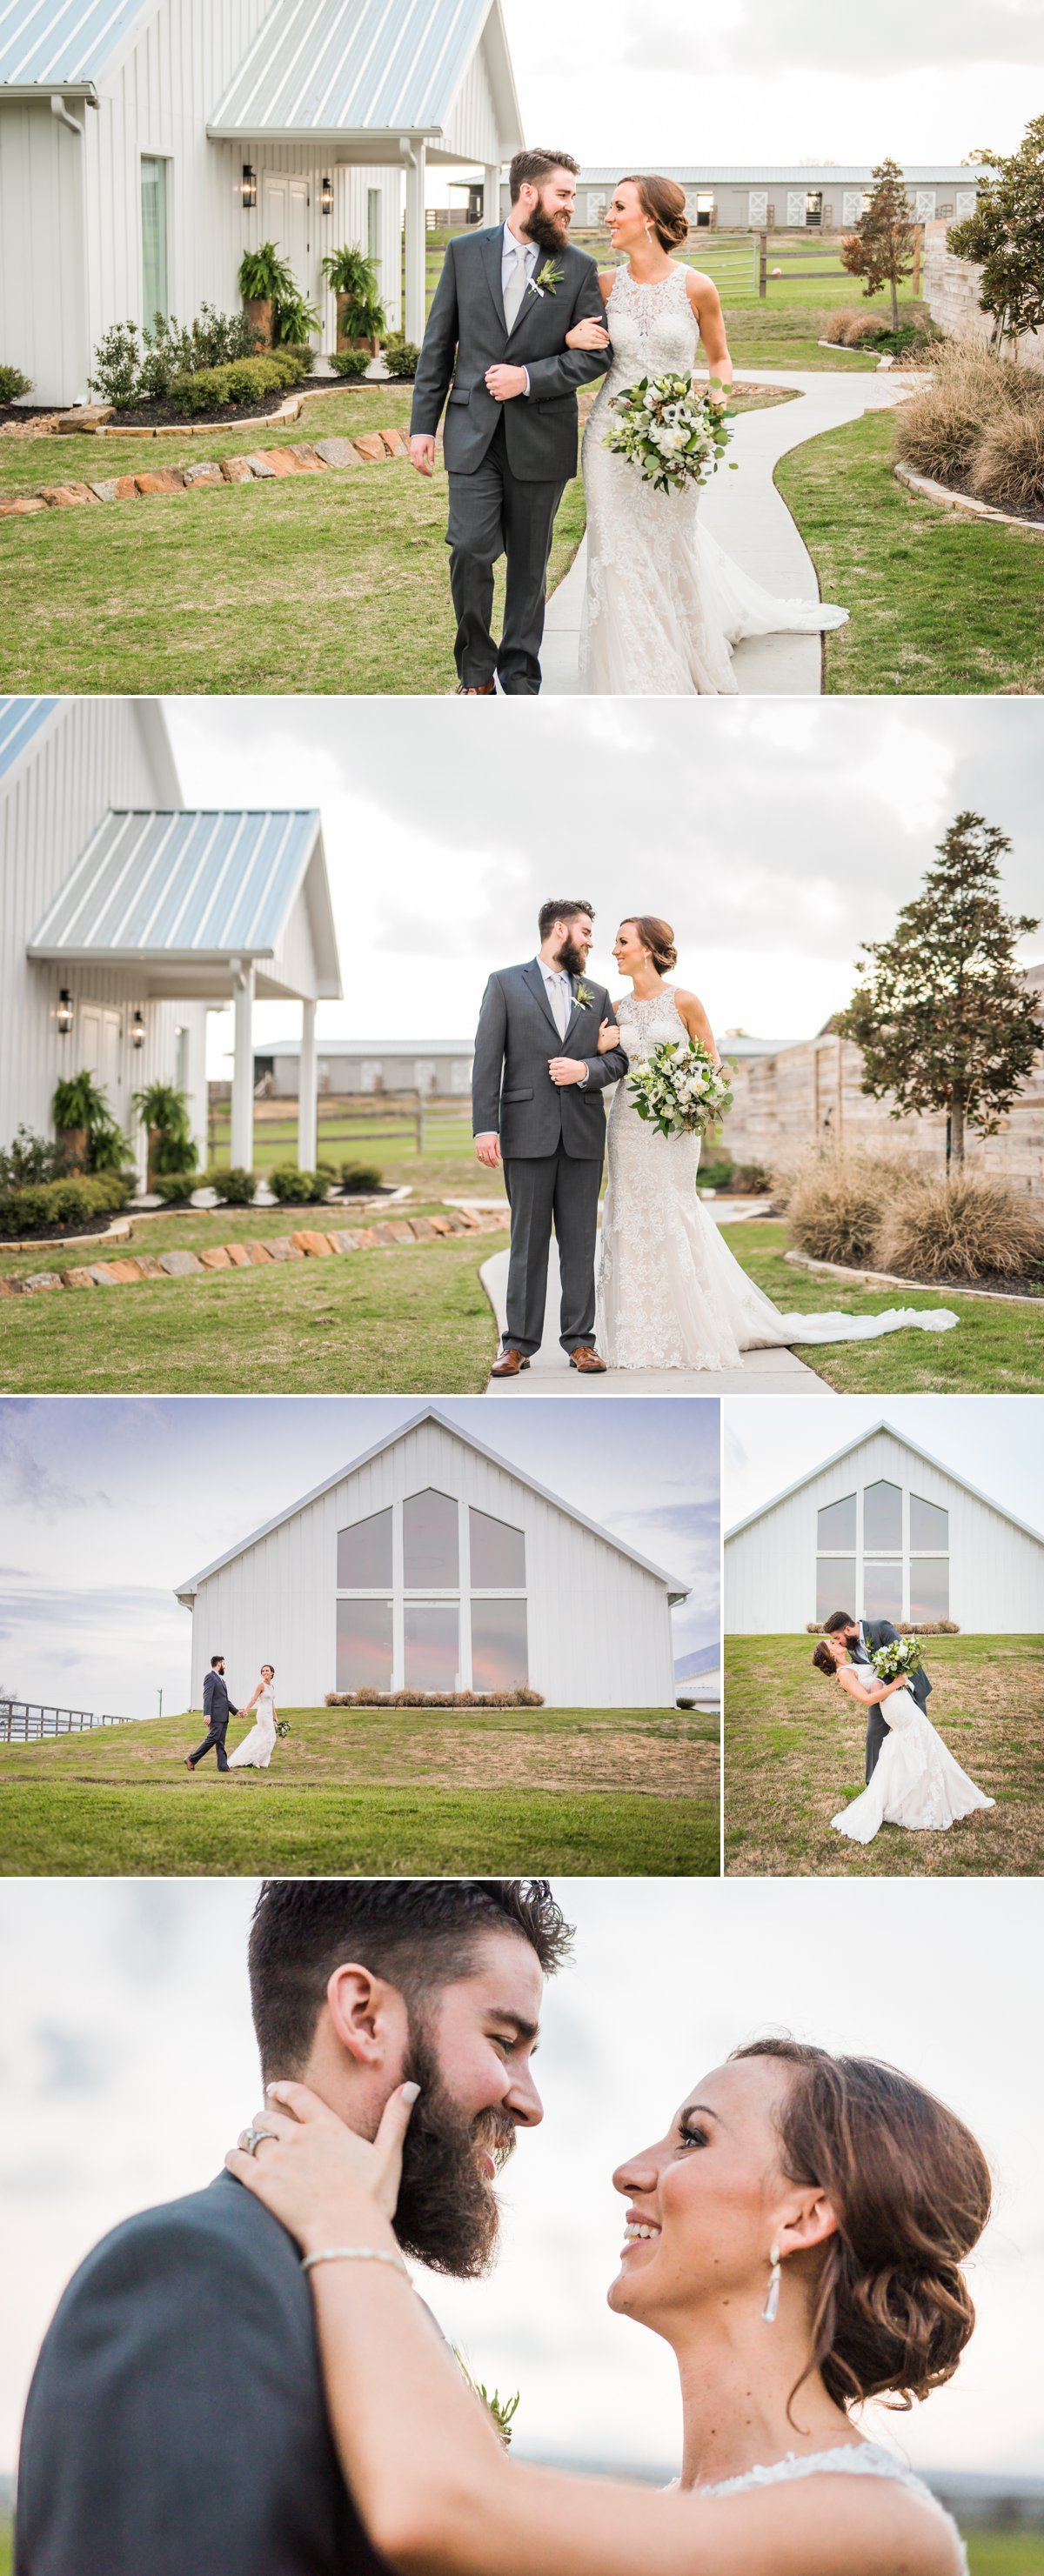 The Farmhouse Wedding Venue Houston Bride and Groom